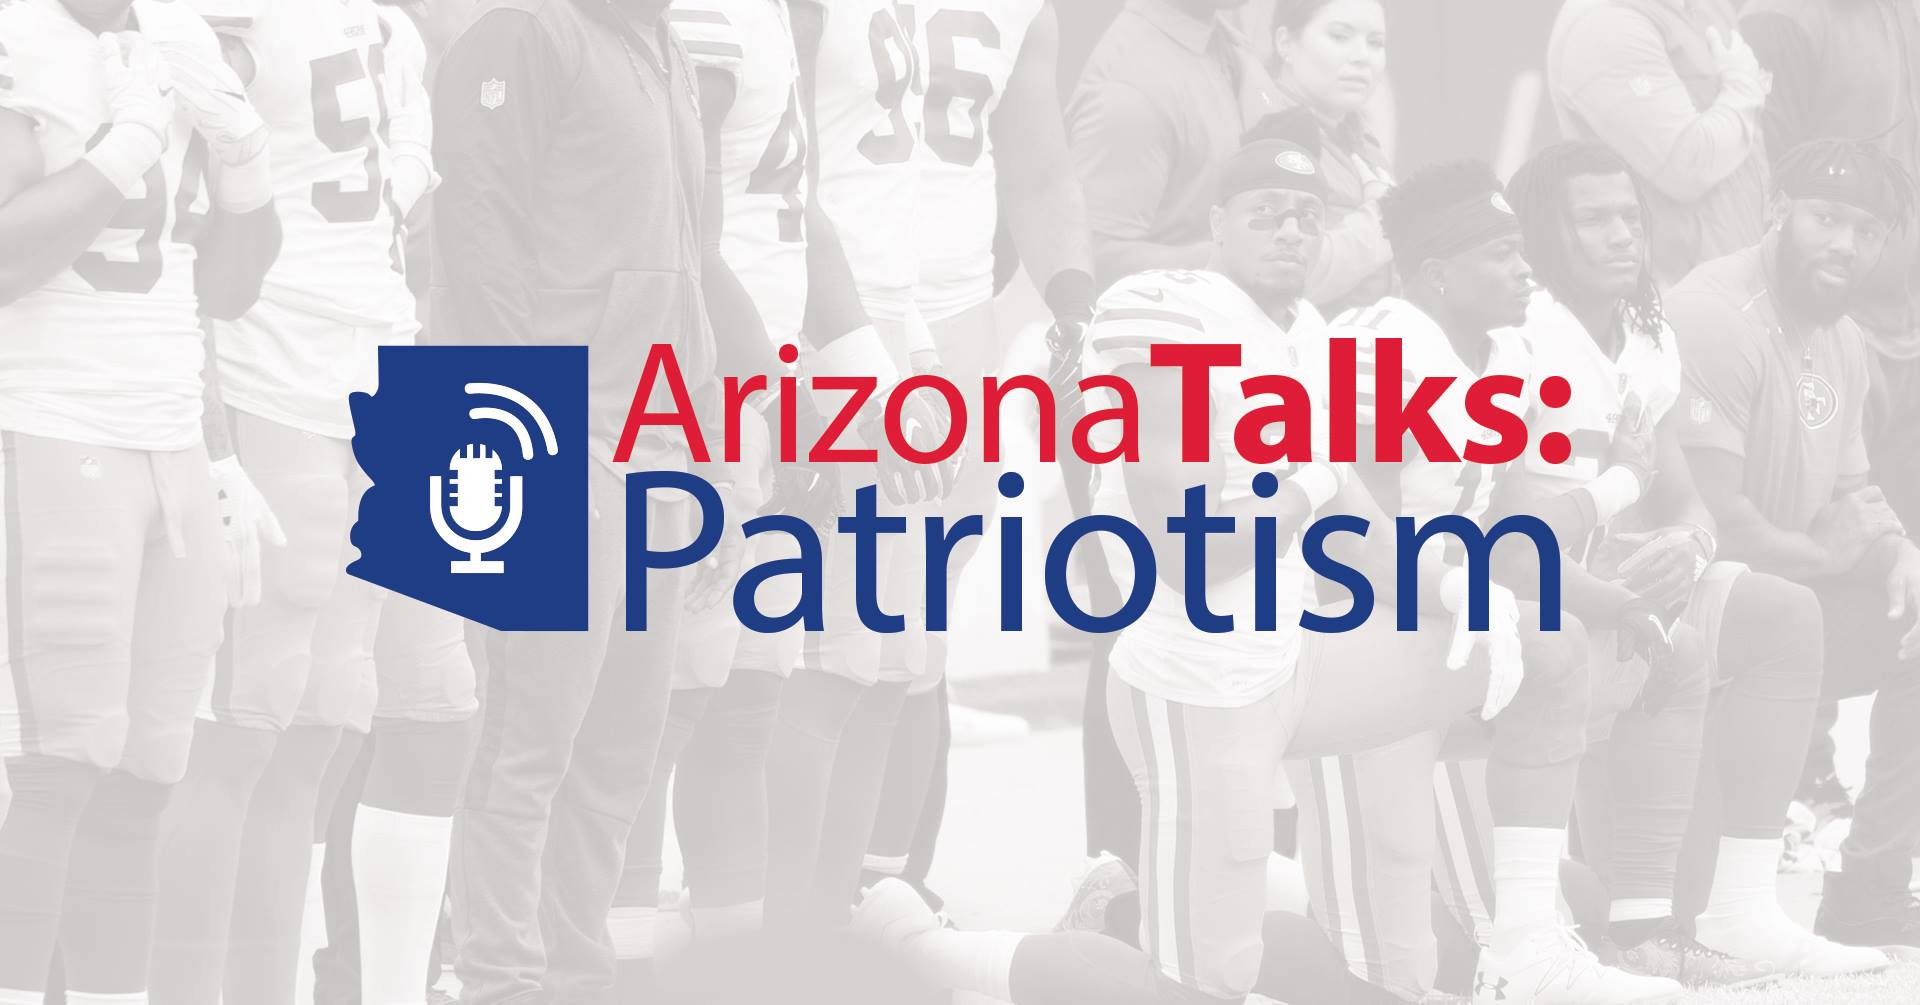 Arizona Talks: Patriotism